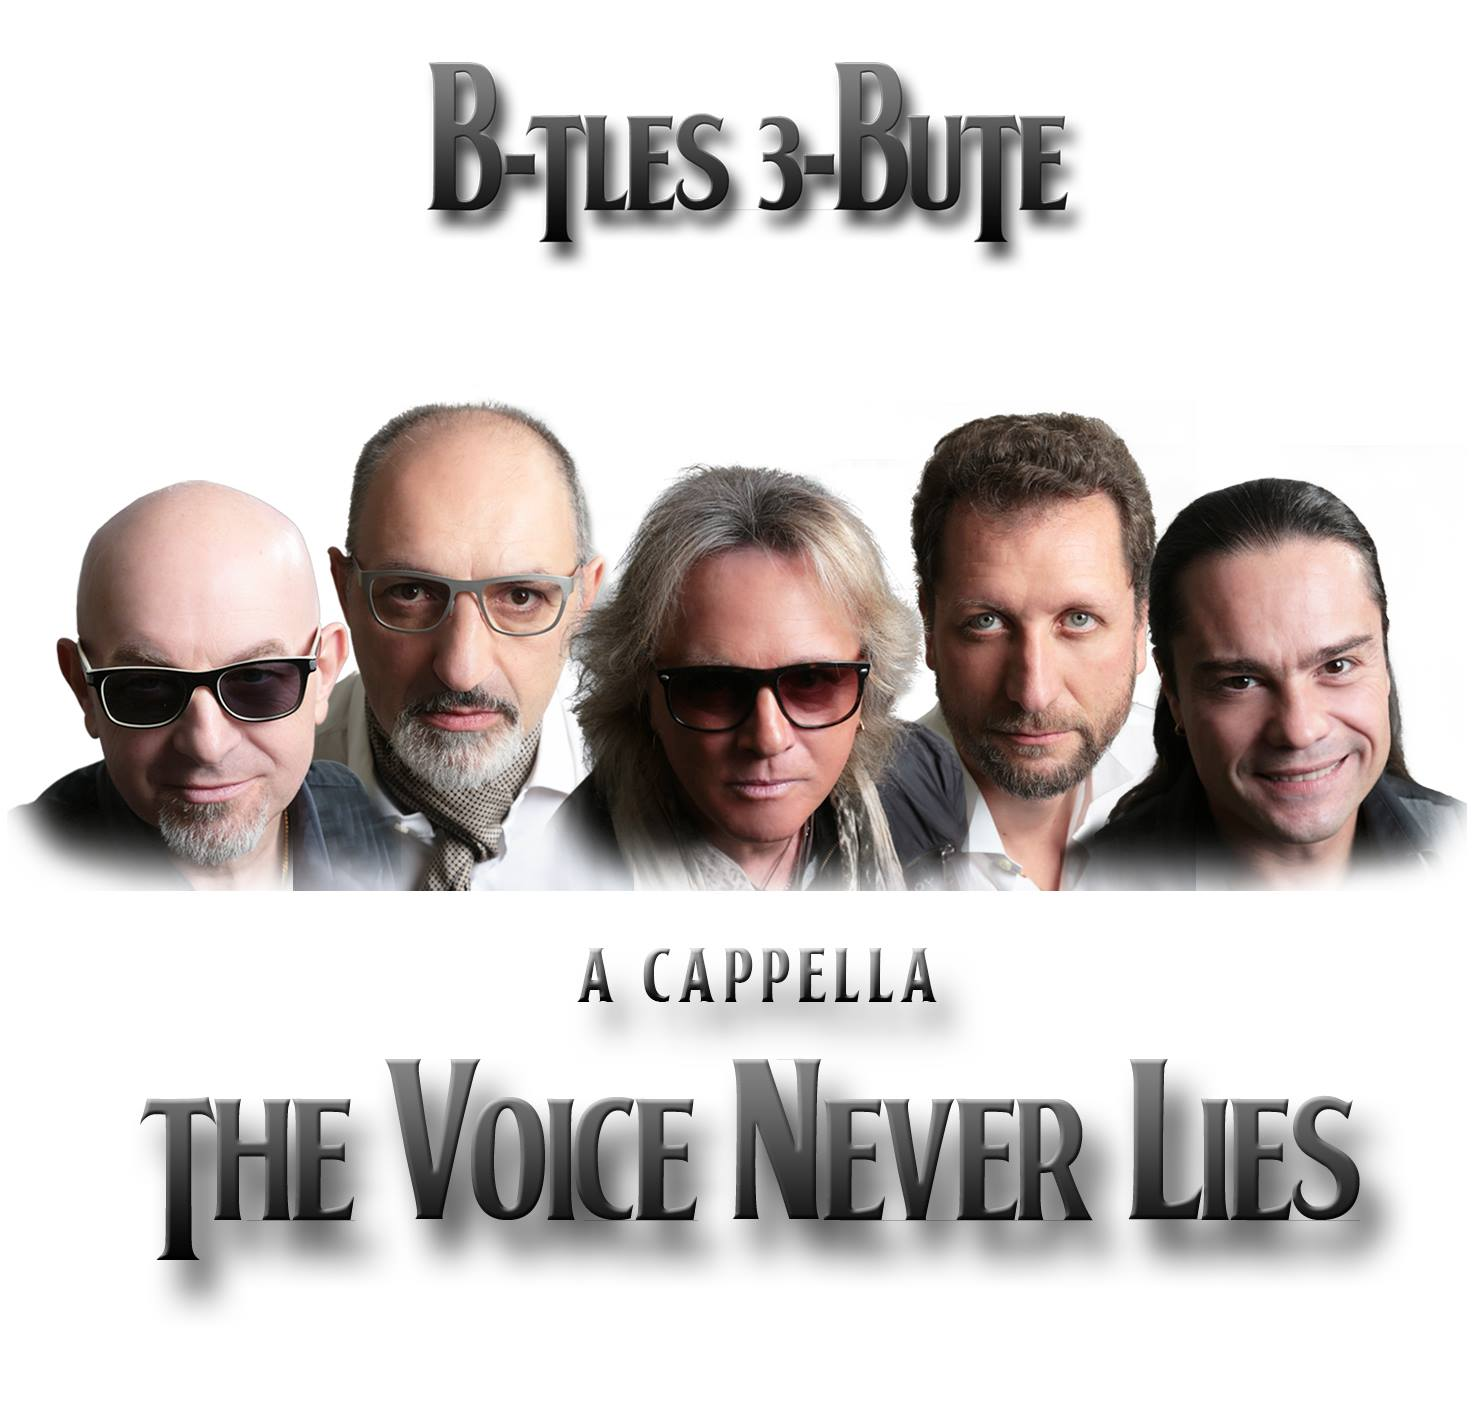 B-TLES 3-BUTE - THE VOICE NEVER LIES (A Cappella)  CD